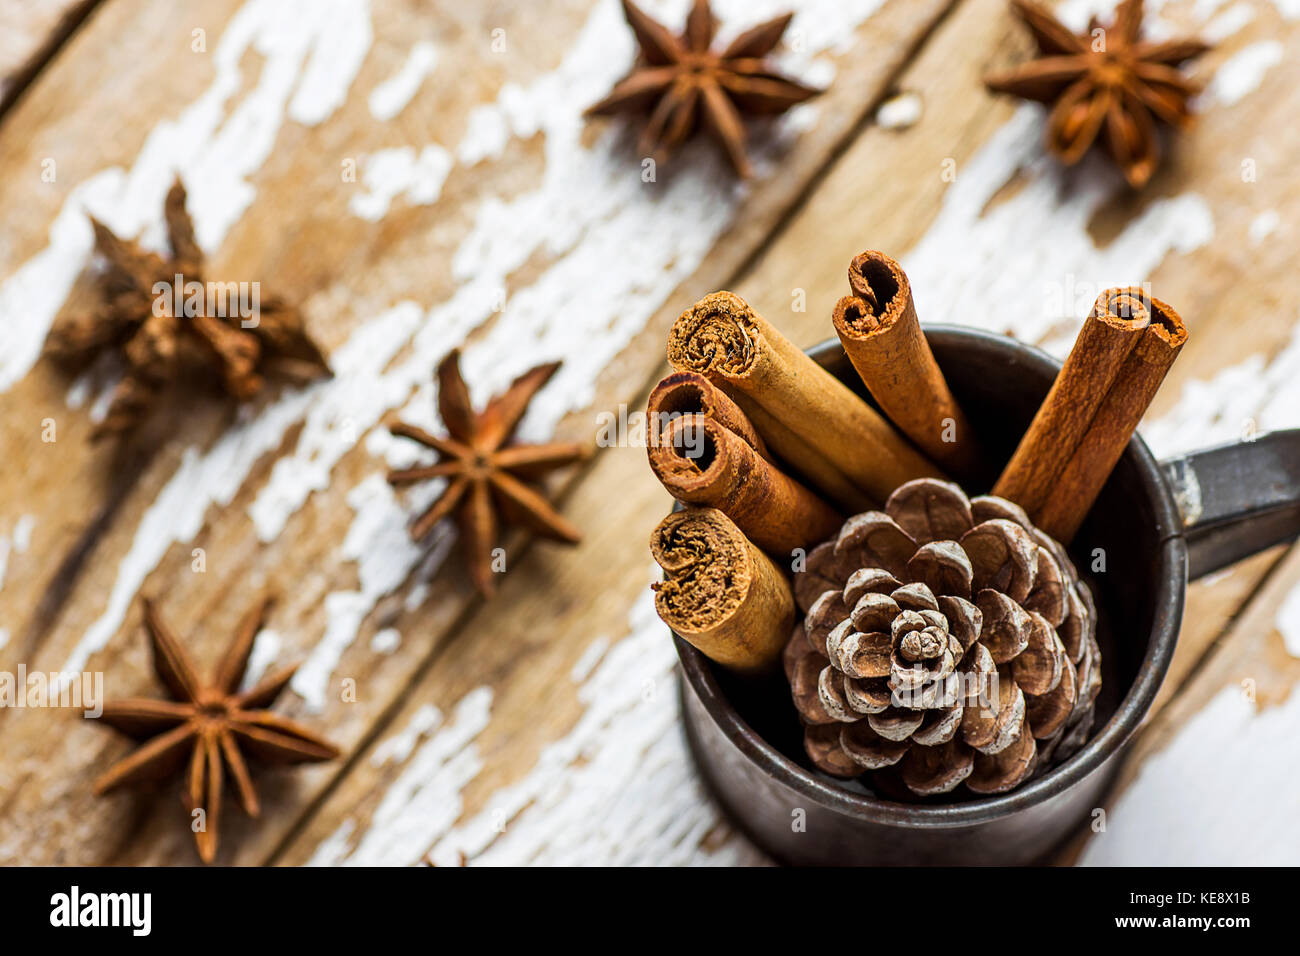 Christmas Baking Ingredients Decoration Cinnamon Sticks Scattered Anise Star Pine Cone in Vintage Jug on Snowy Wood - Stock Image